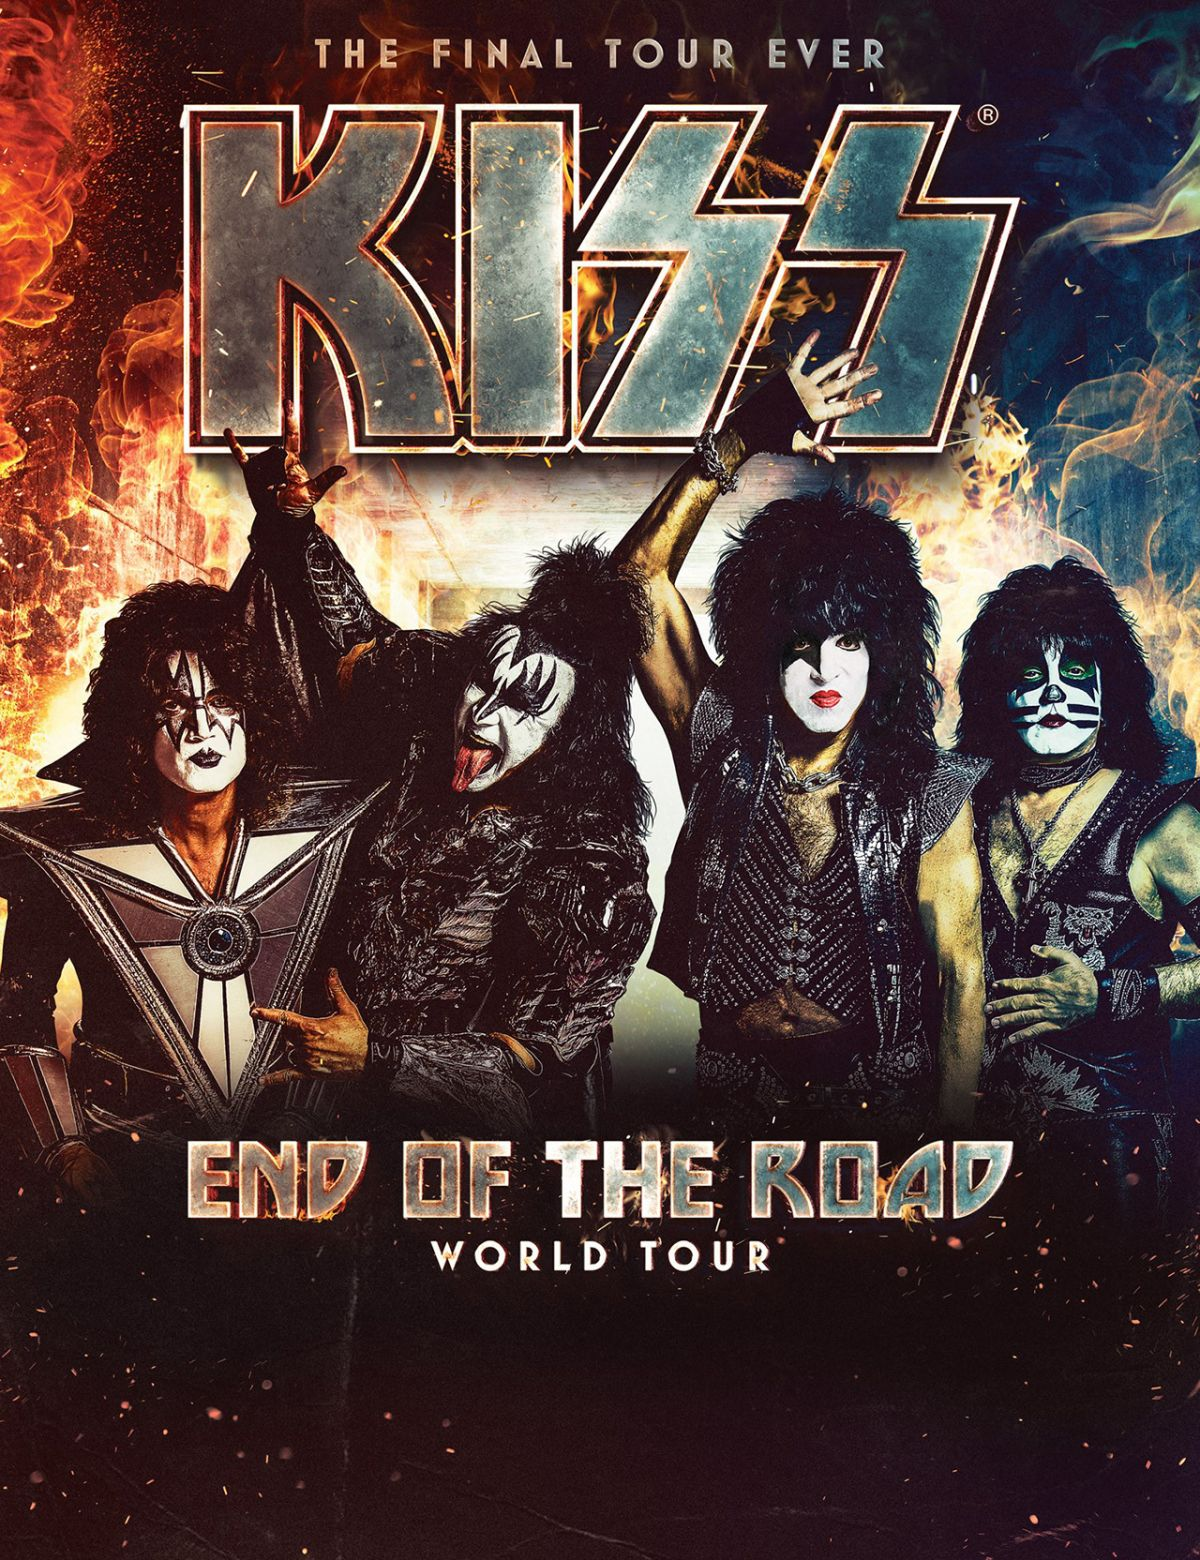 Tommy Thayer: Kiss farewell tour is not a gimmick | Louder